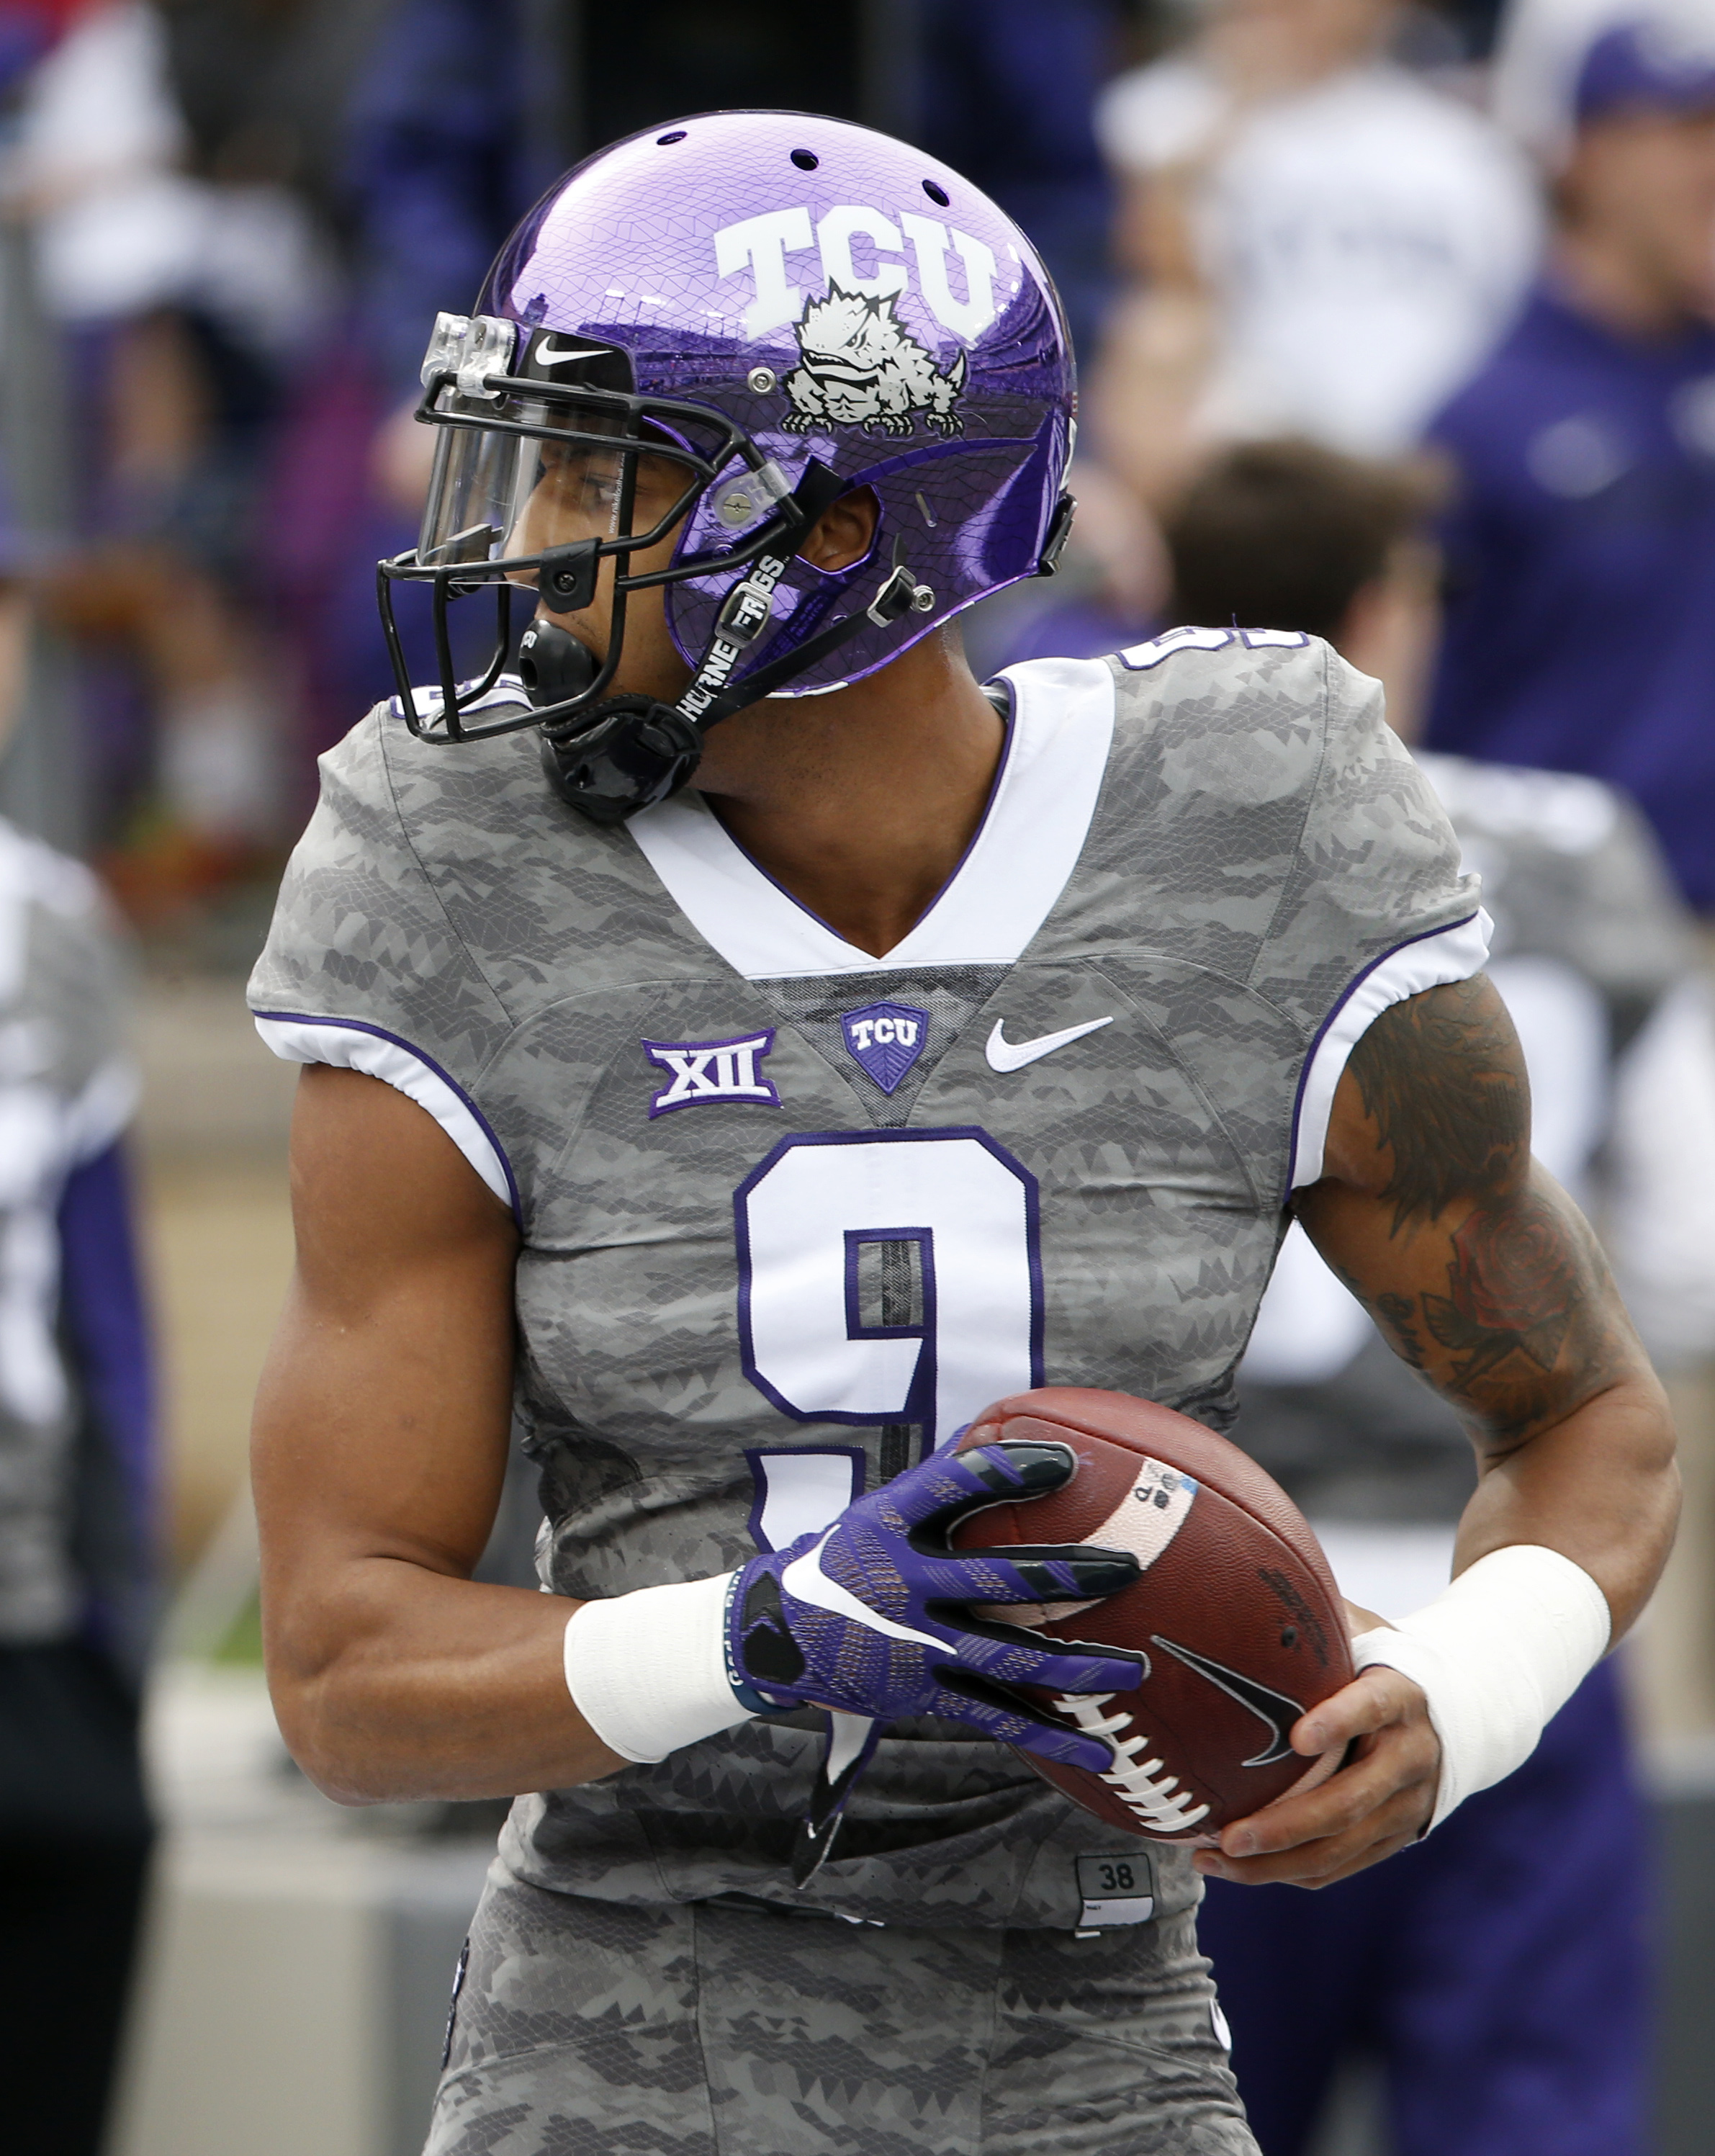 TCU wide receiver Josh Doctson (9) goes through warm-ups before TCU takes on Kansas in an NCAA college football game Saturday, Nov. 14, 2015, in Fort Worth, Texas. (AP Photo/Ron Jenkins)